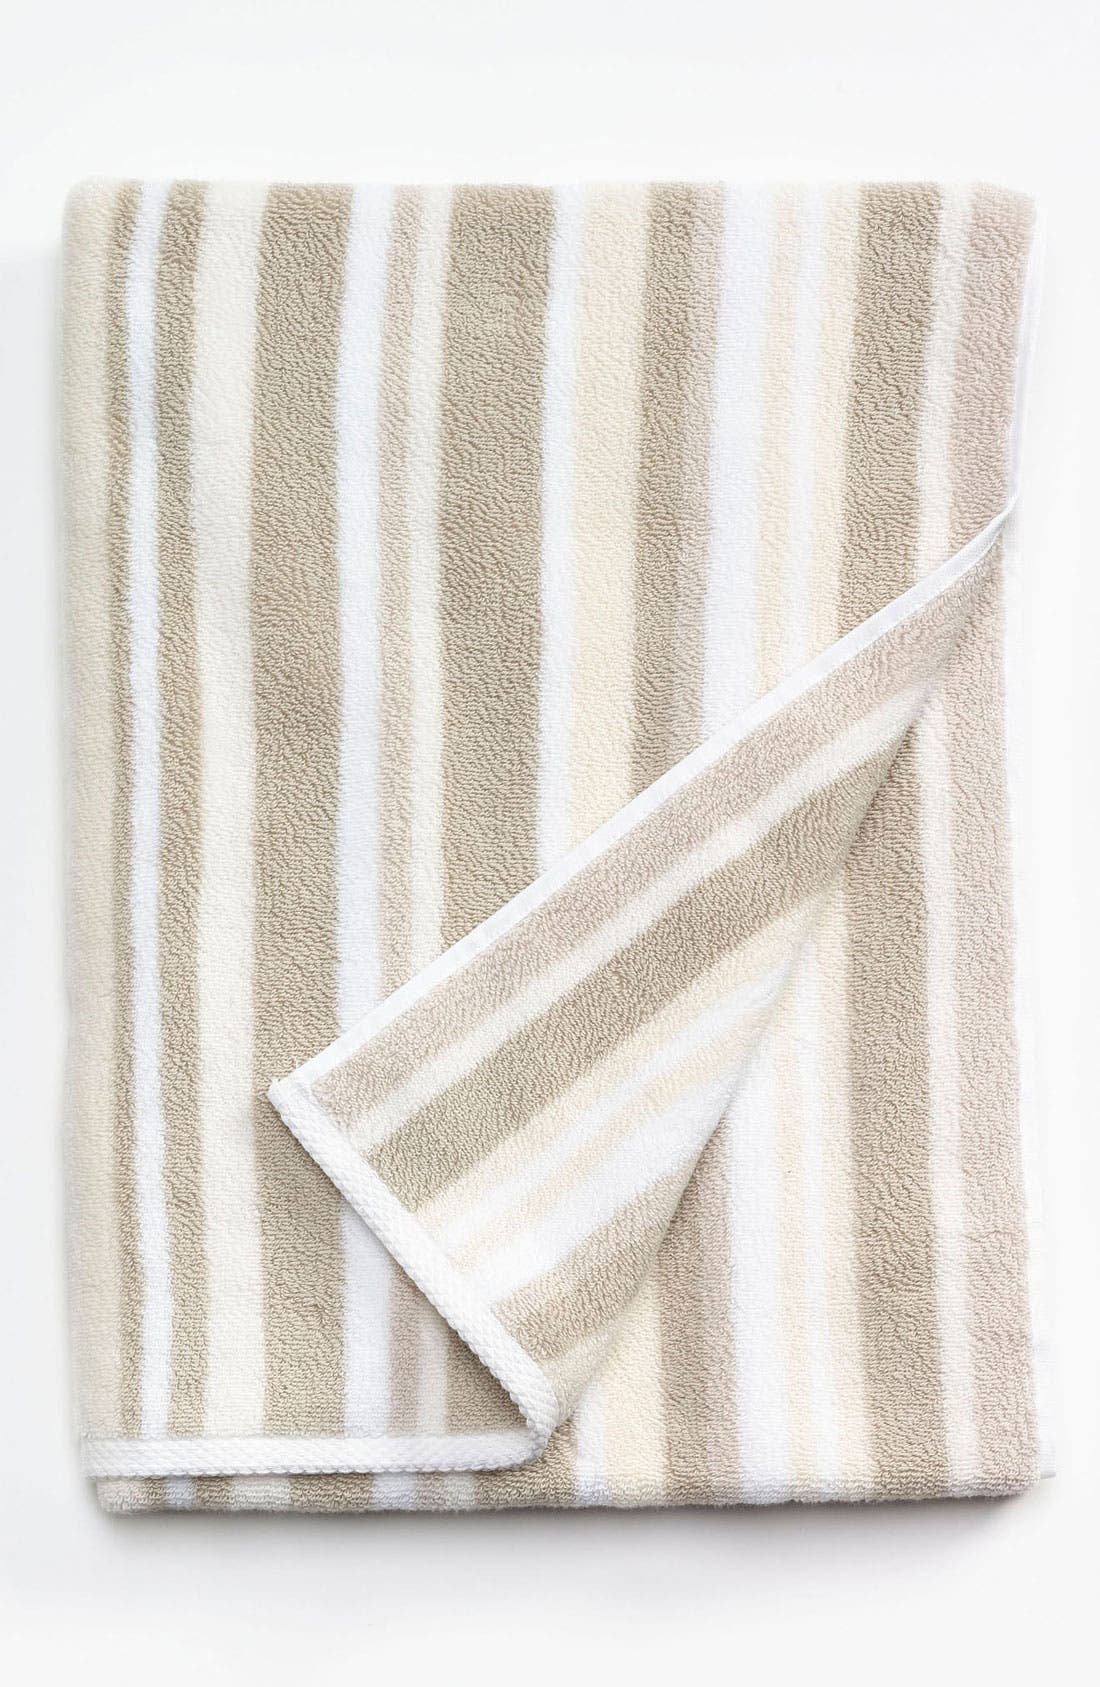 Main Image - Waterworks Studio 'Perennial' Combed Turkish Cotton Bath Towel (Online Only)